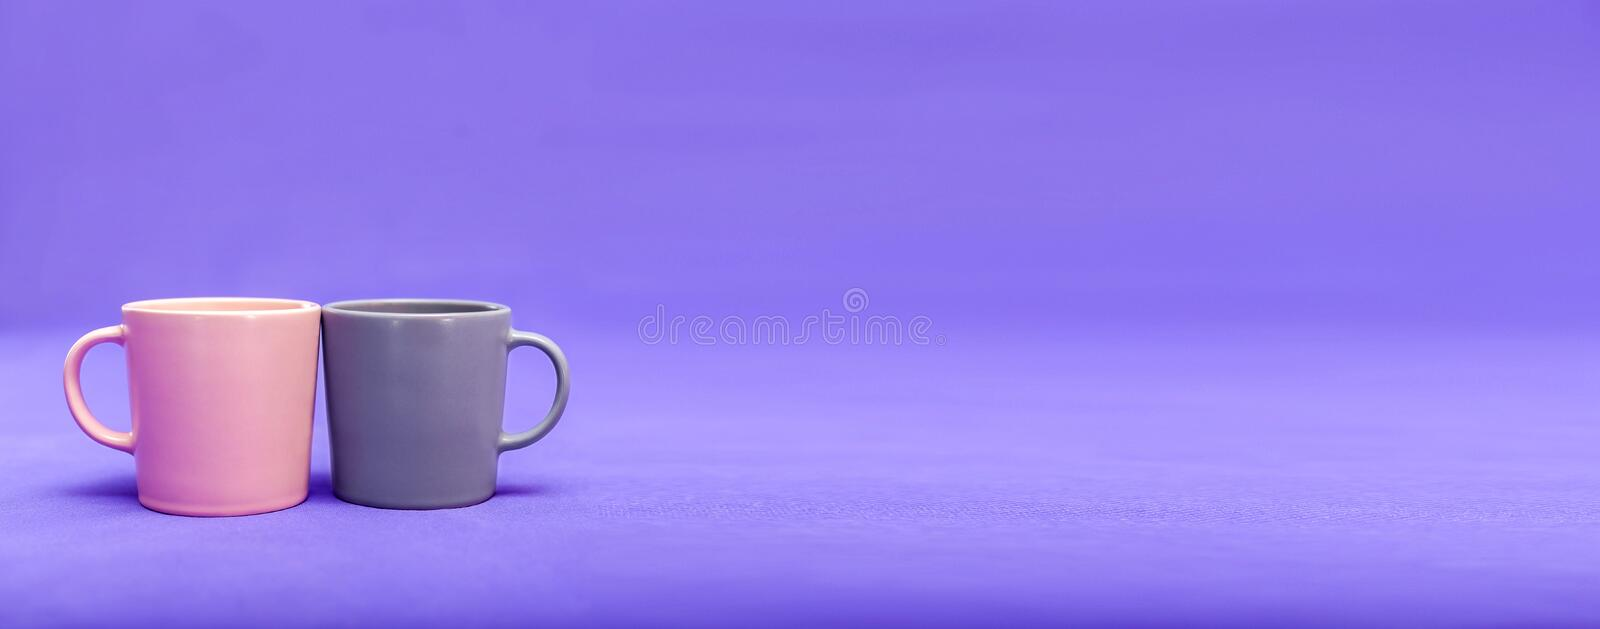 Two beautiful cups of pink and gray are on a purple background. The concept of the holiday - Valentine`s Day, Mother`s Day, royalty free stock photo